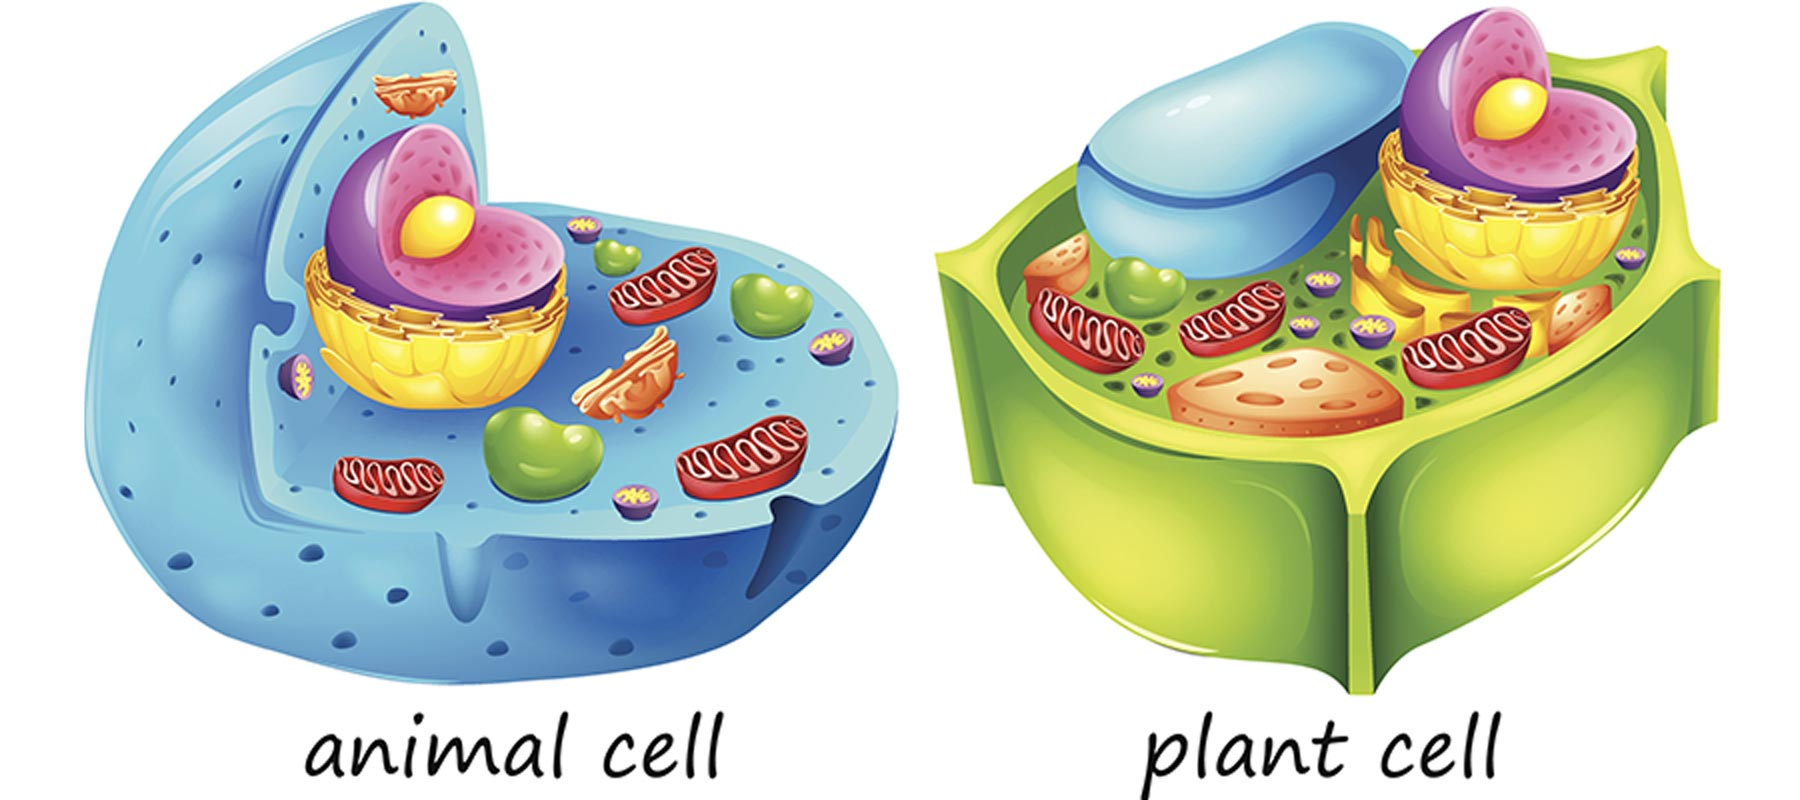 Differences between animal cells and plant cells - Online ... - photo#23